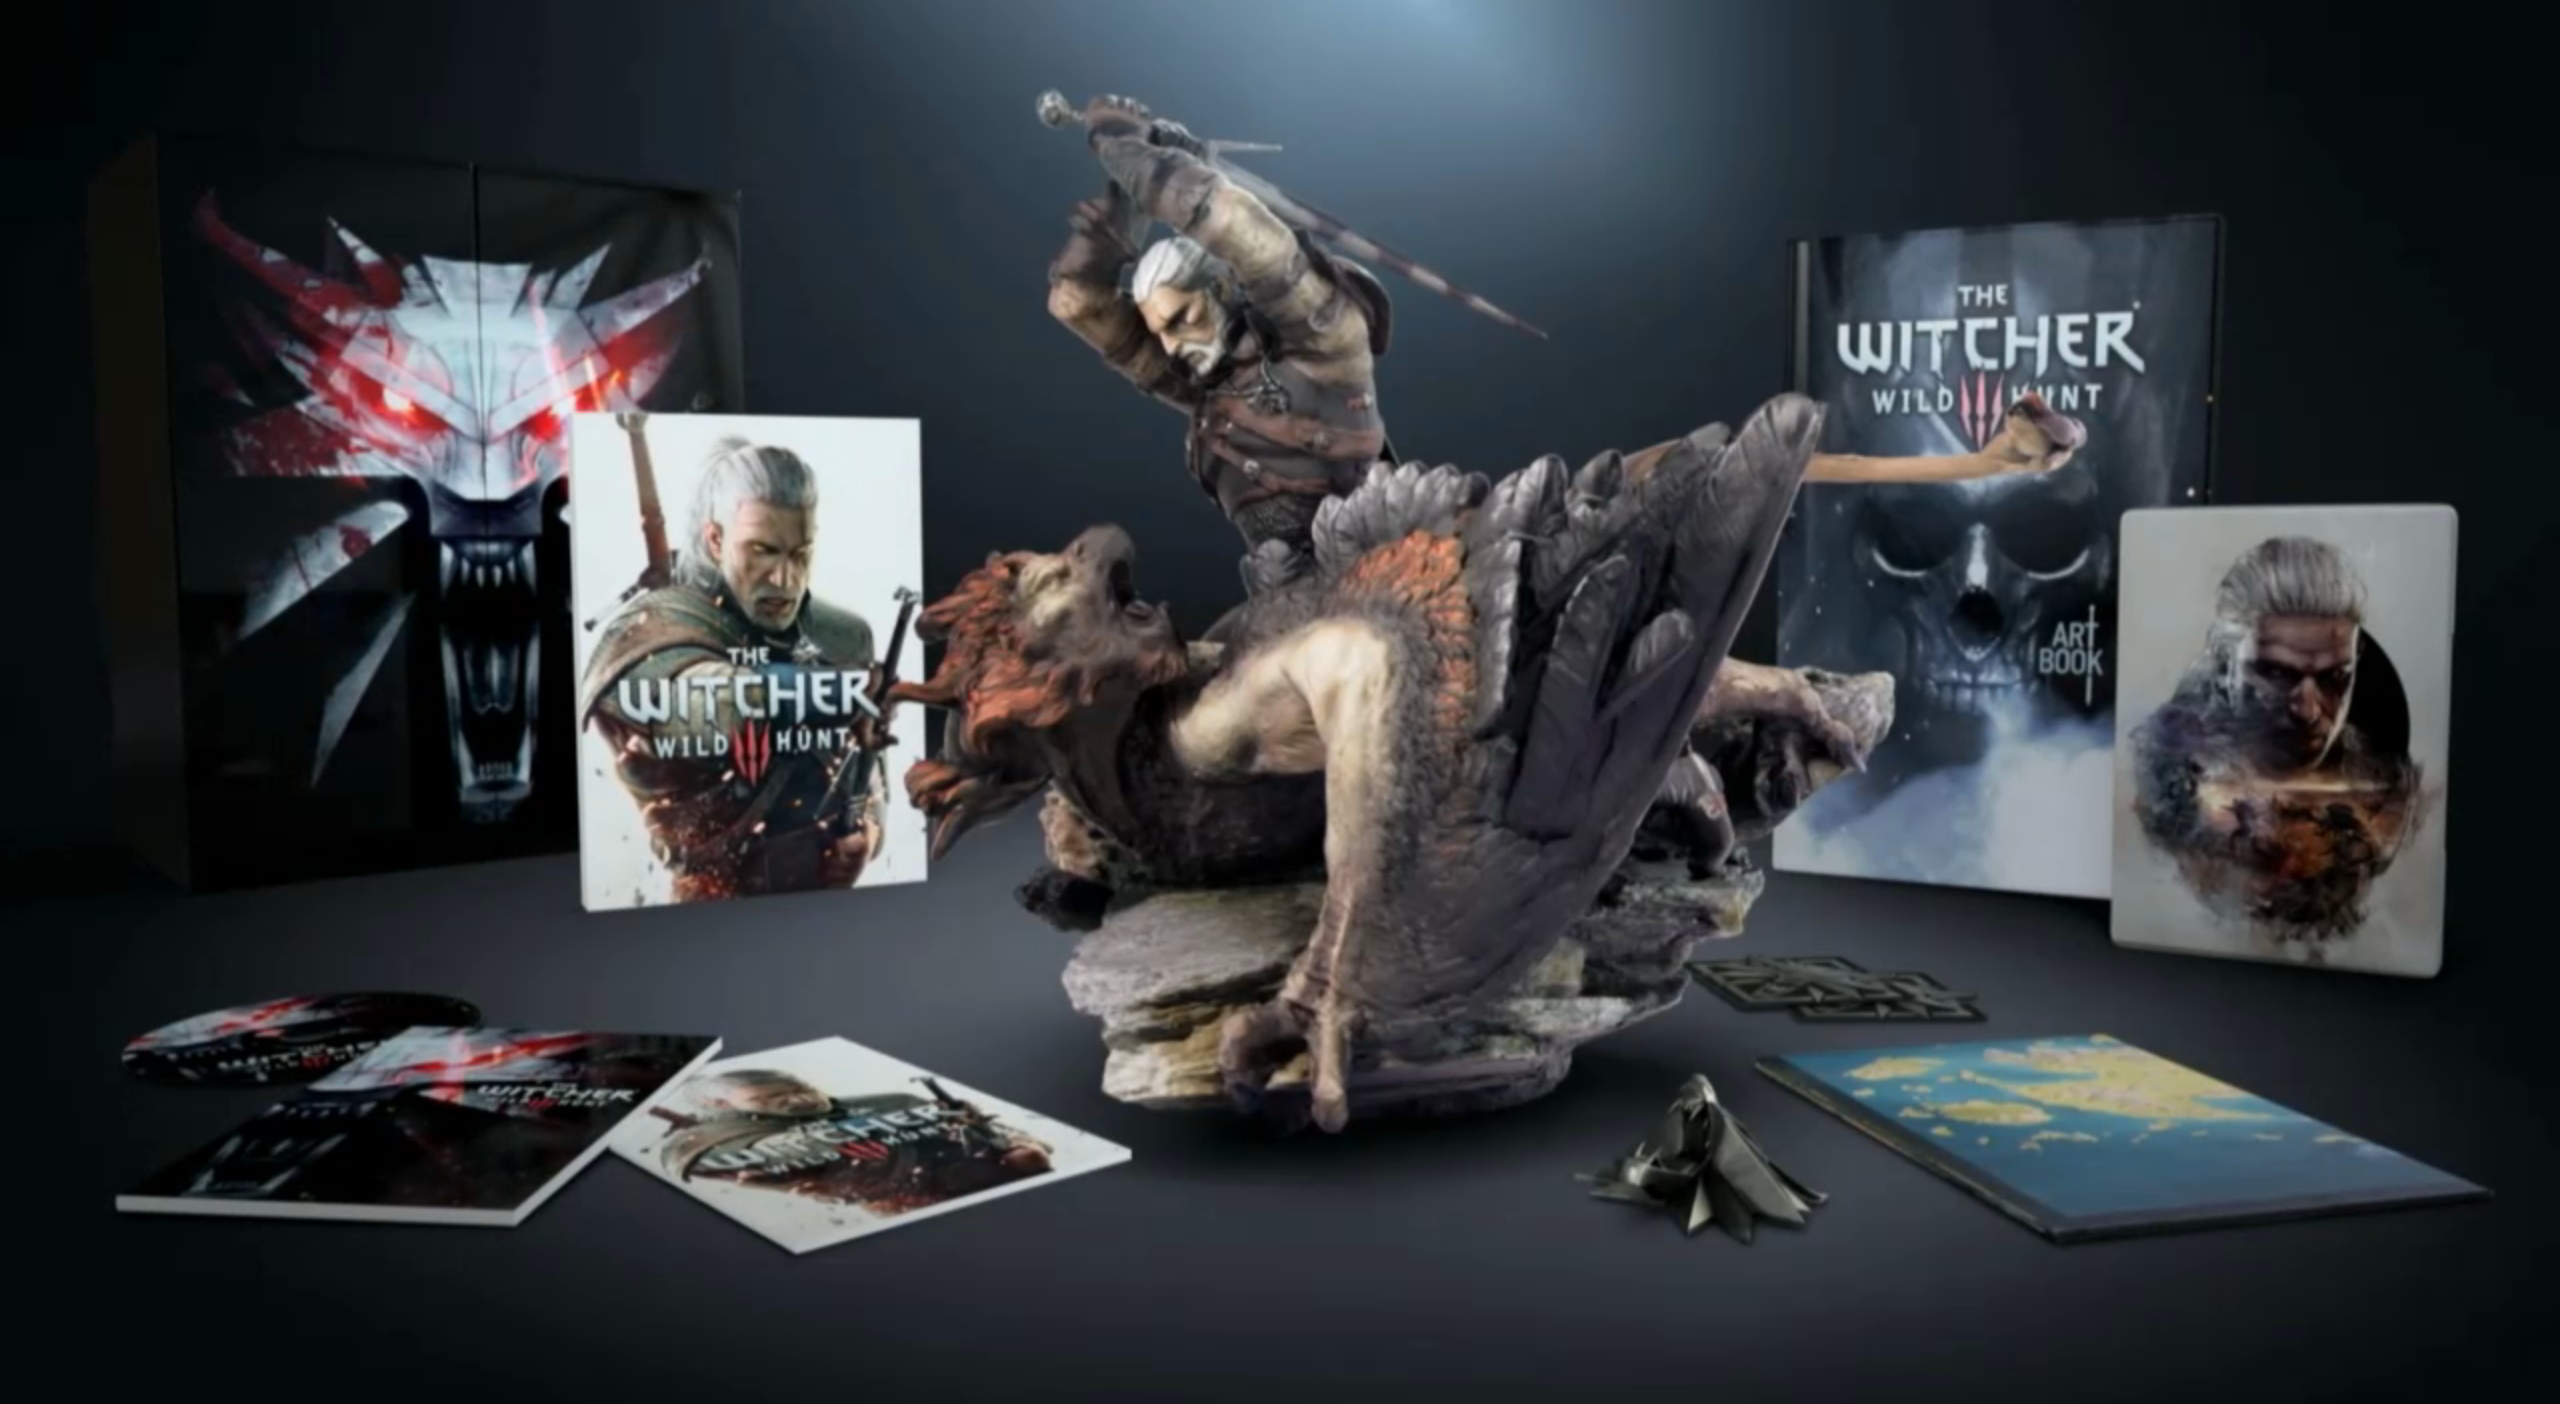 The witcher 3 release date in Australia